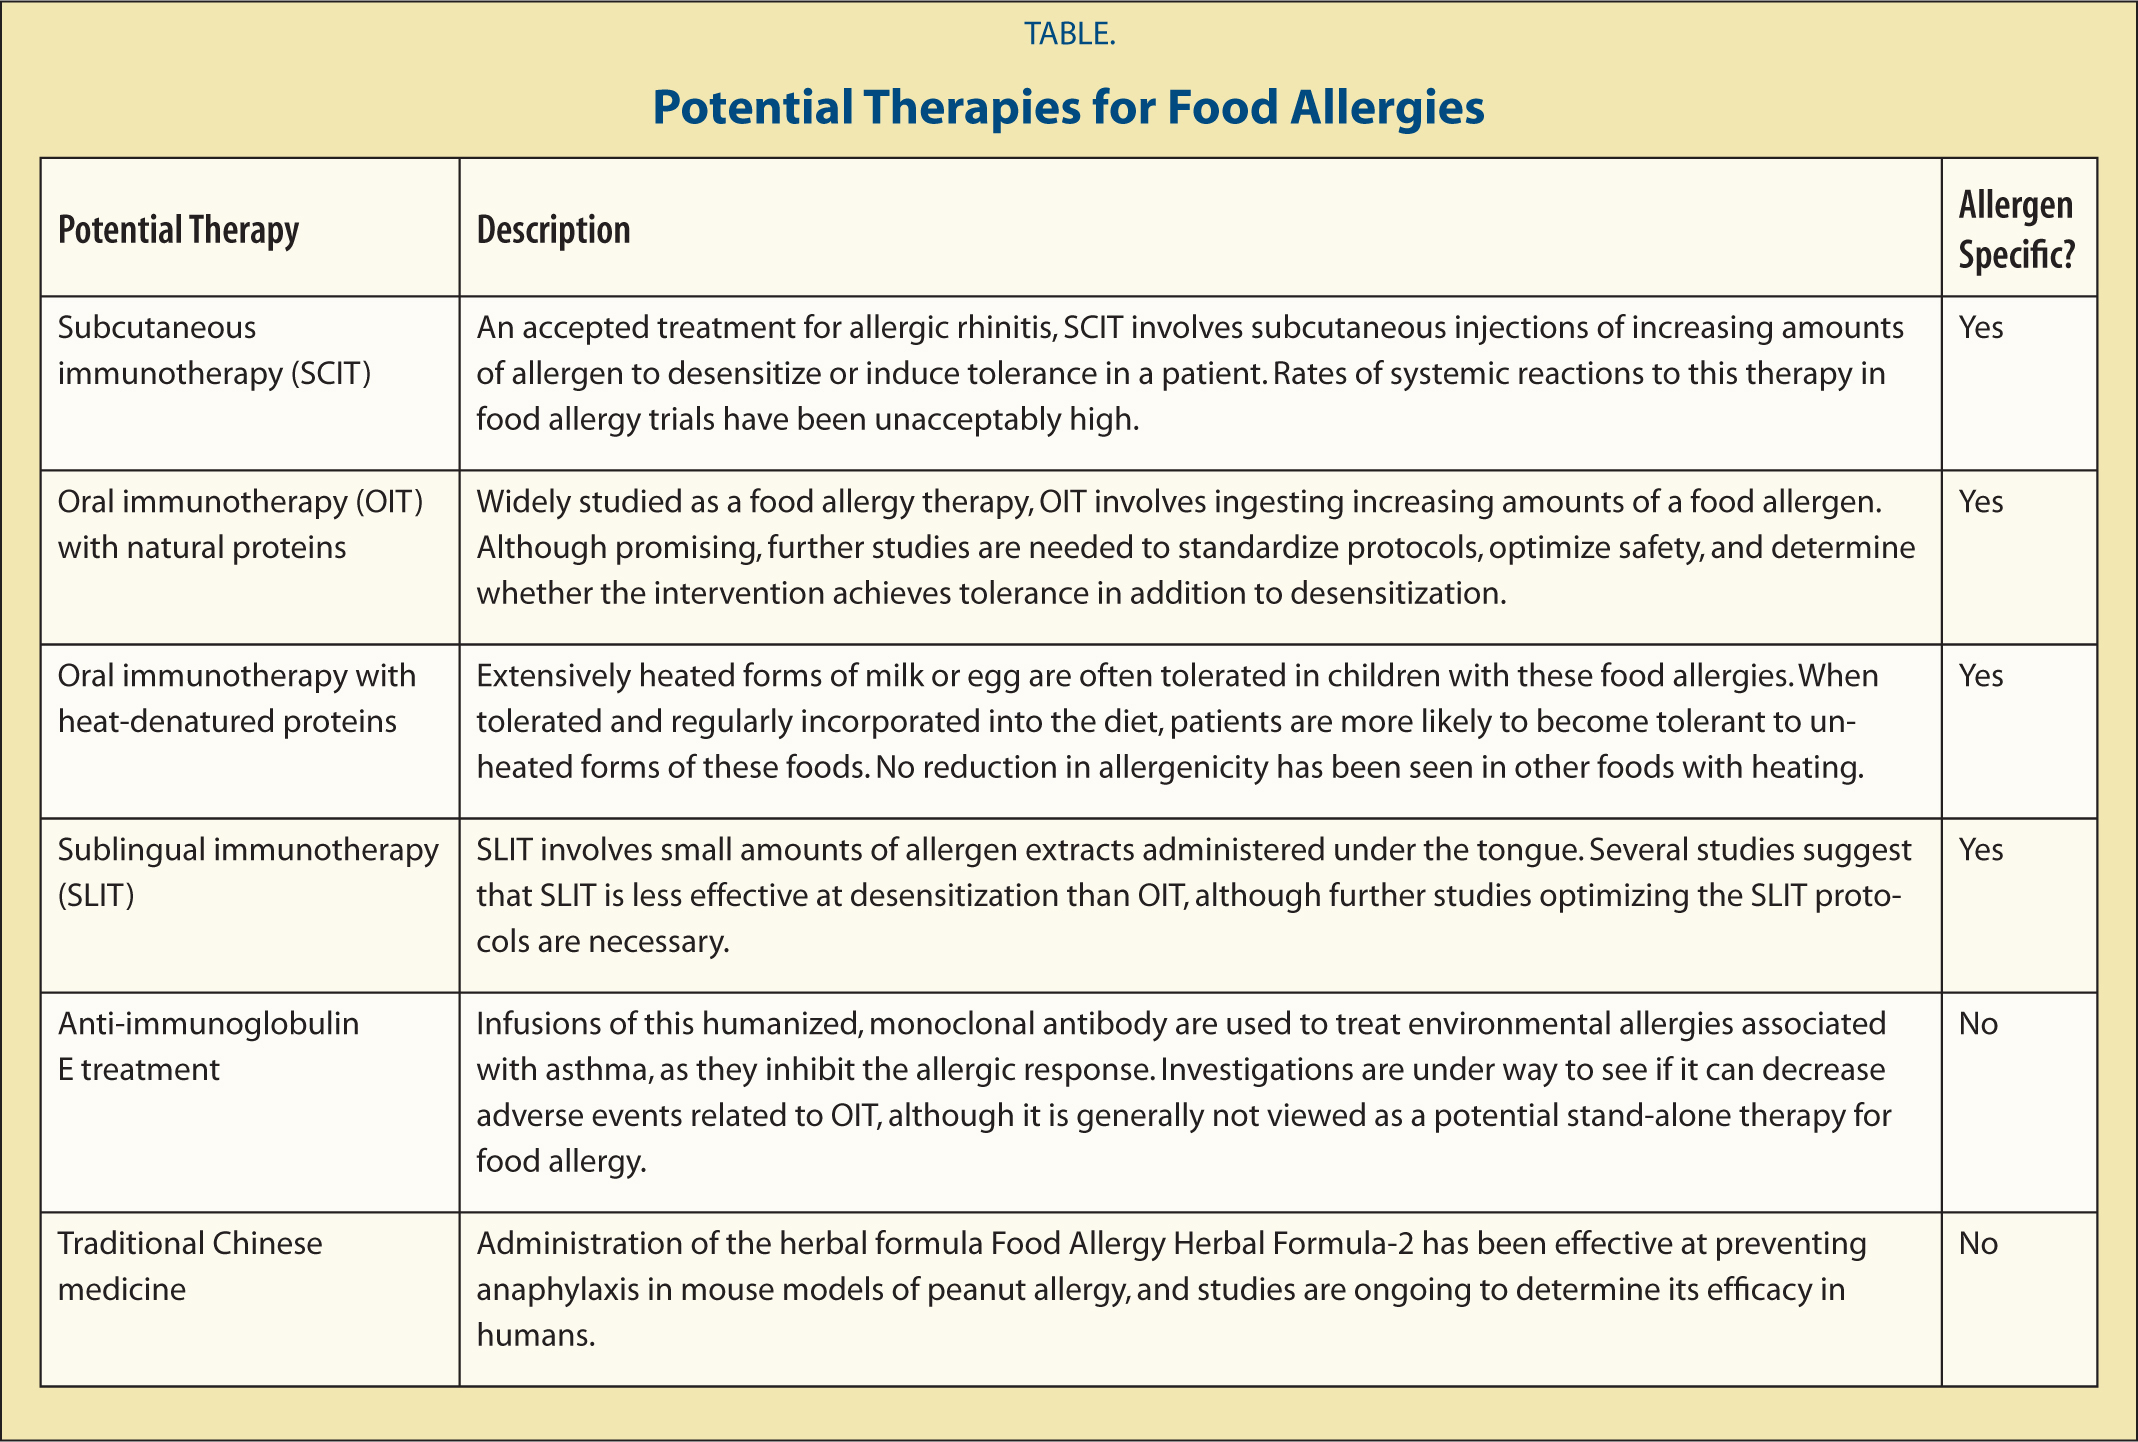 Potential Therapies for Food Allergies